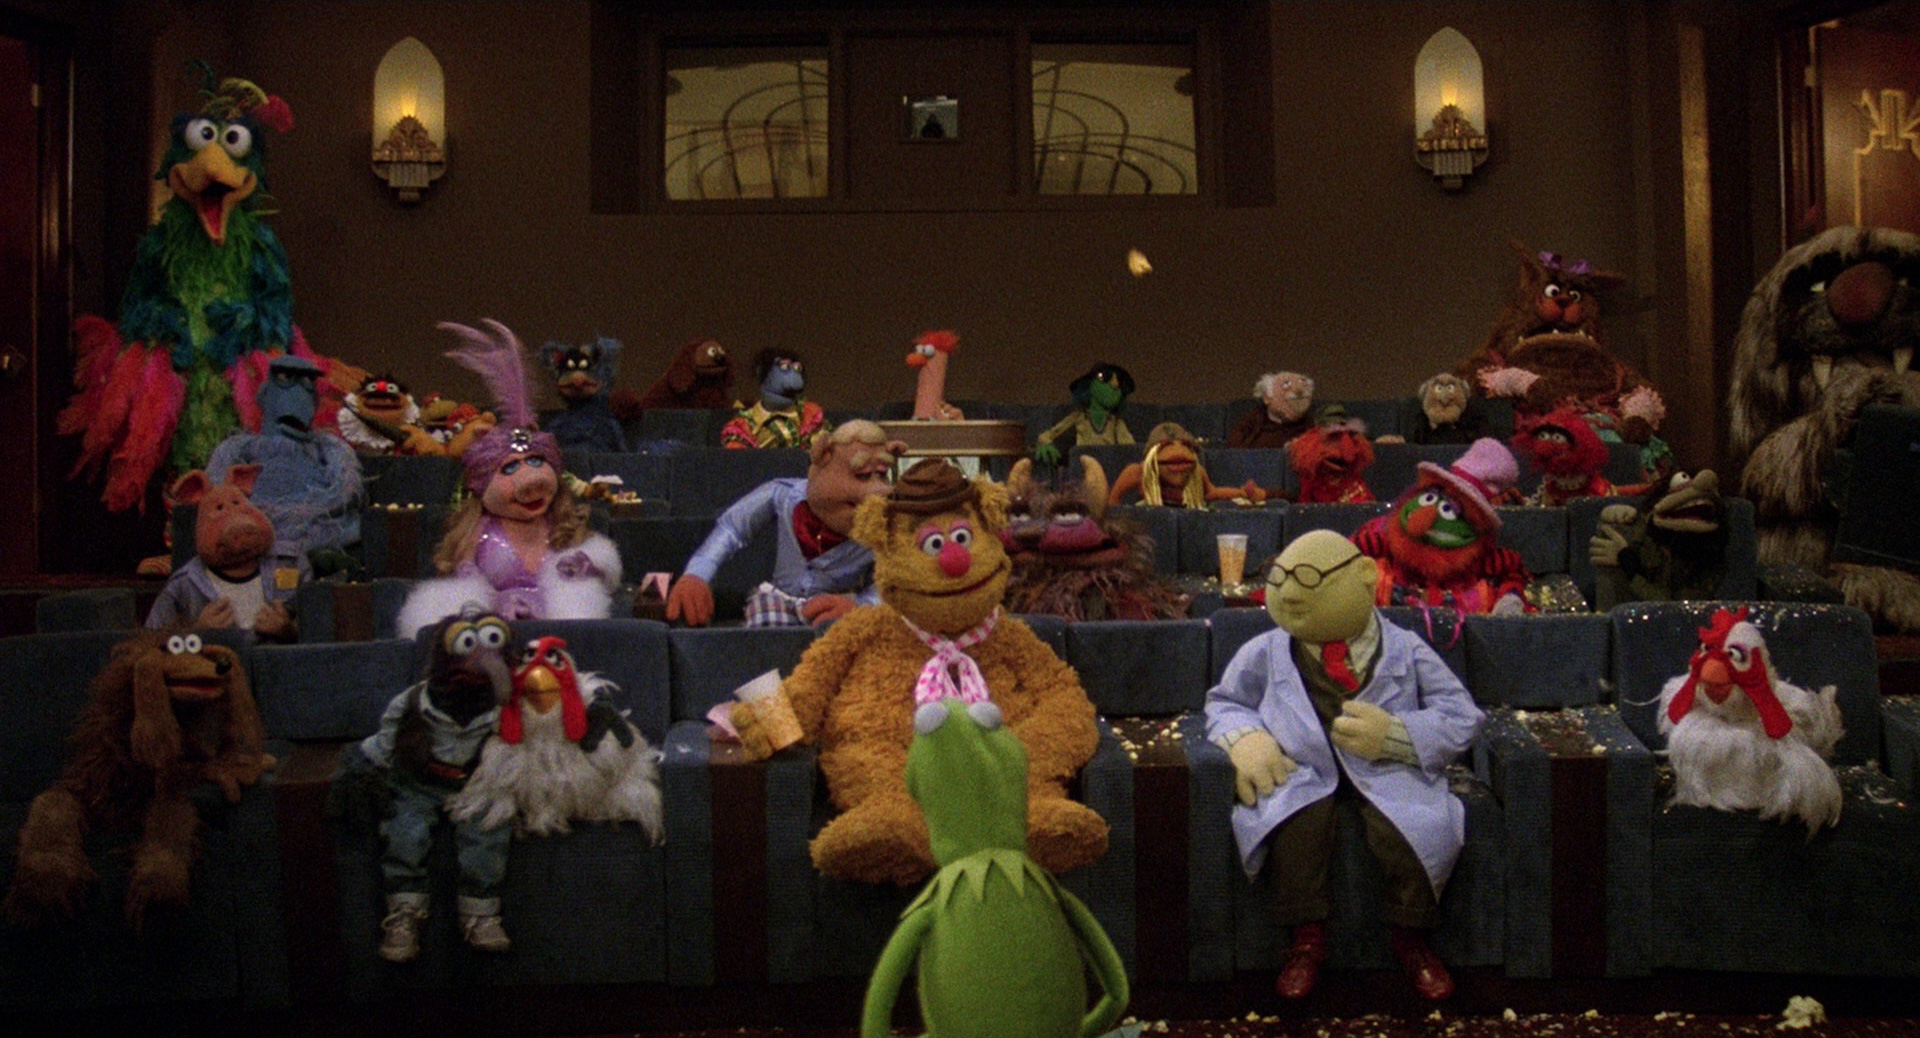 Scene from the Muppet Movie